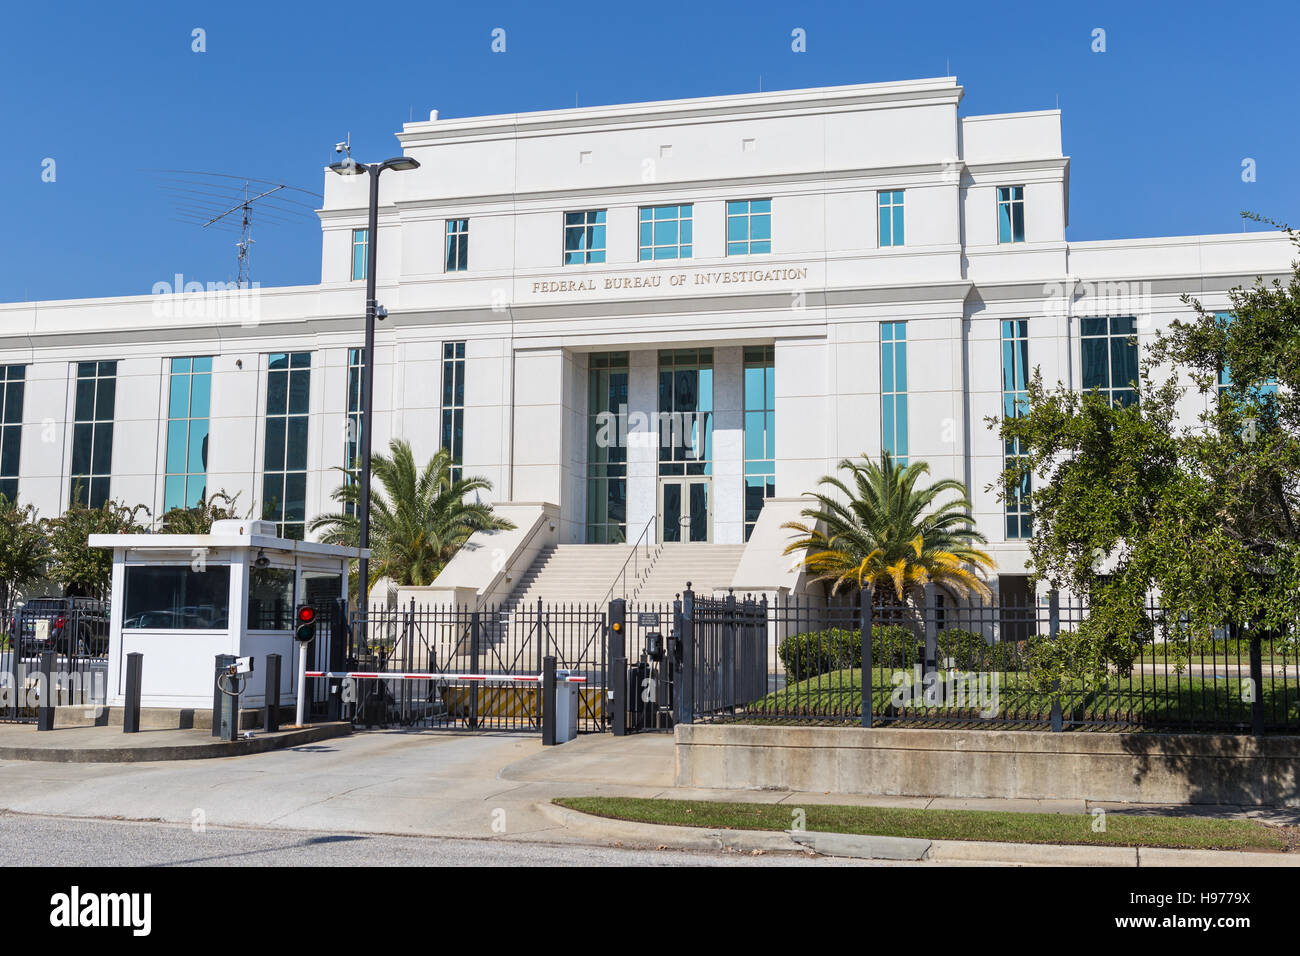 The Federal Bureau of Investigation (FBI) Field Office in Mobile, Alabama. - Stock Image